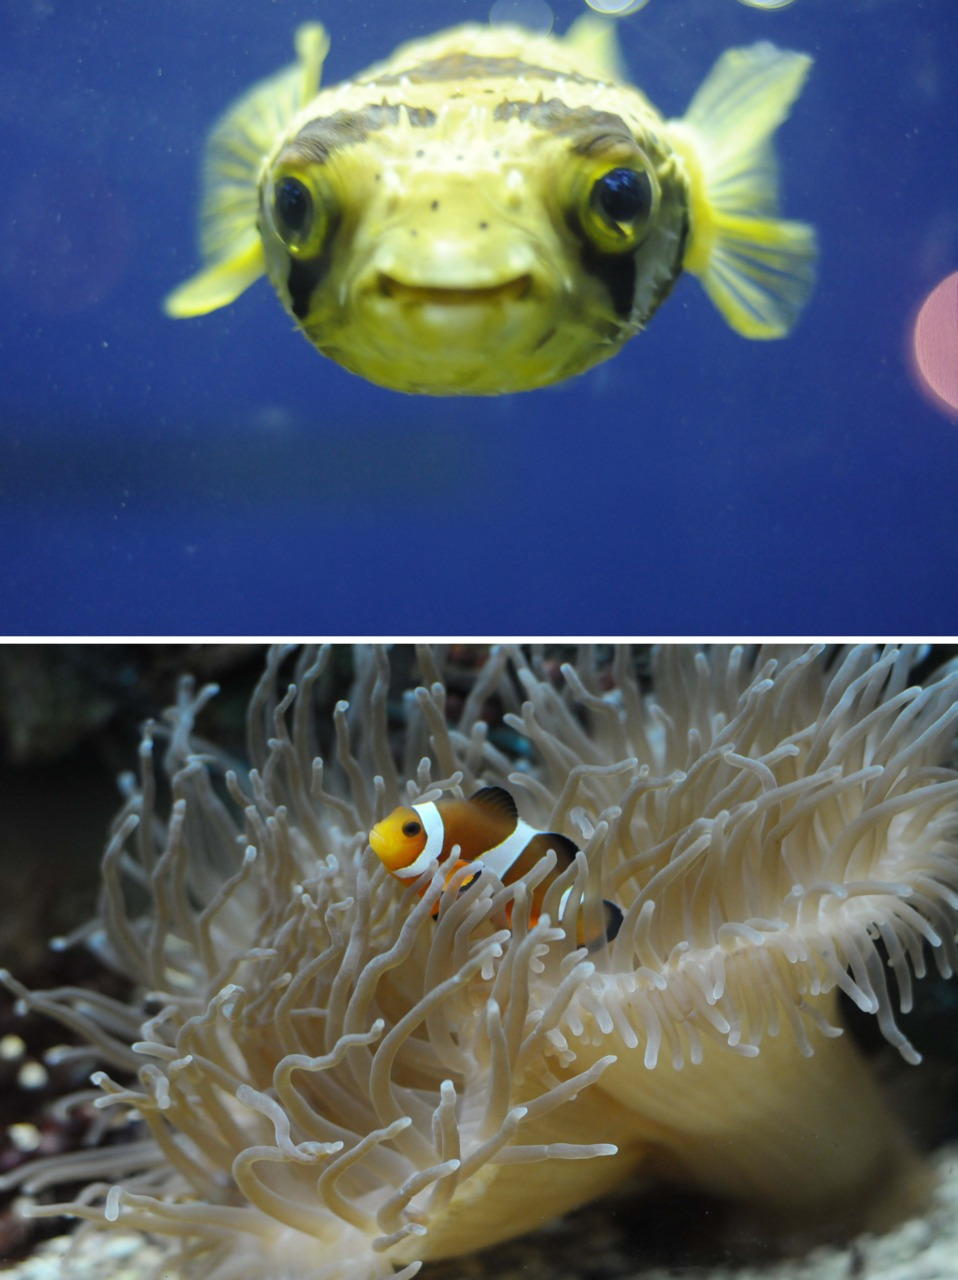 back at work today! over the short vaca, I took a suprisingly small amount of images… heres a pufferfish and a nemo…